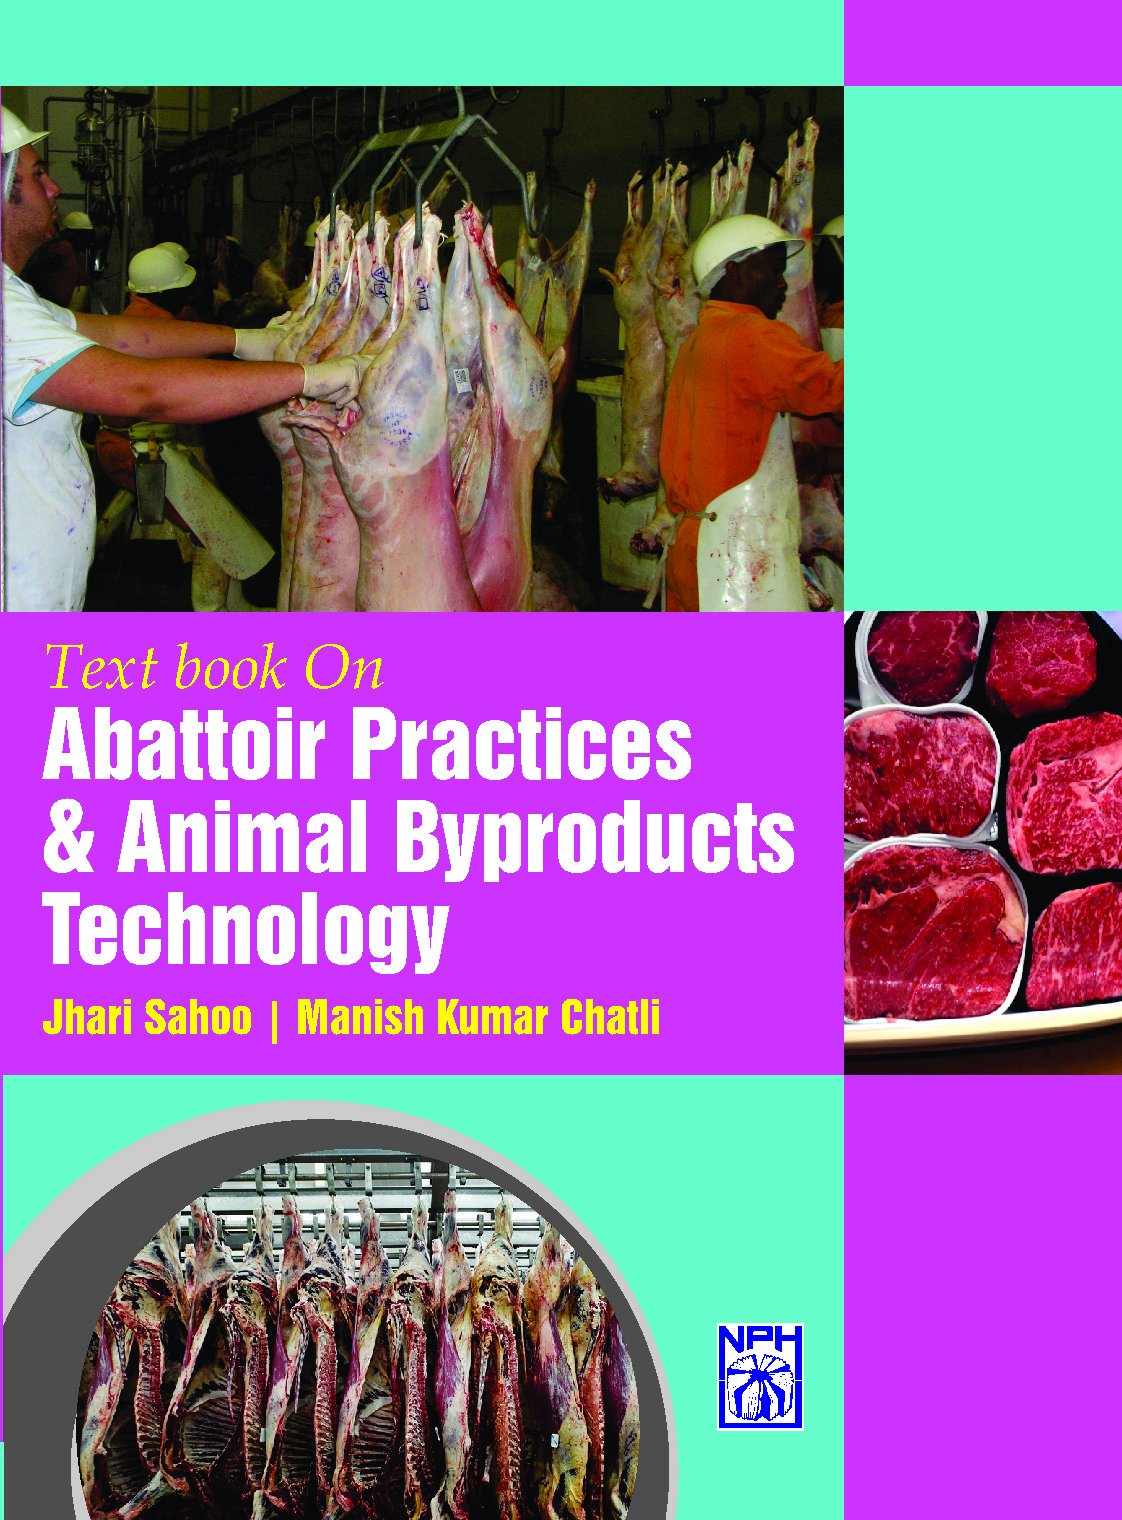 Text Book On Abattoir Practices & Animal By products Technology